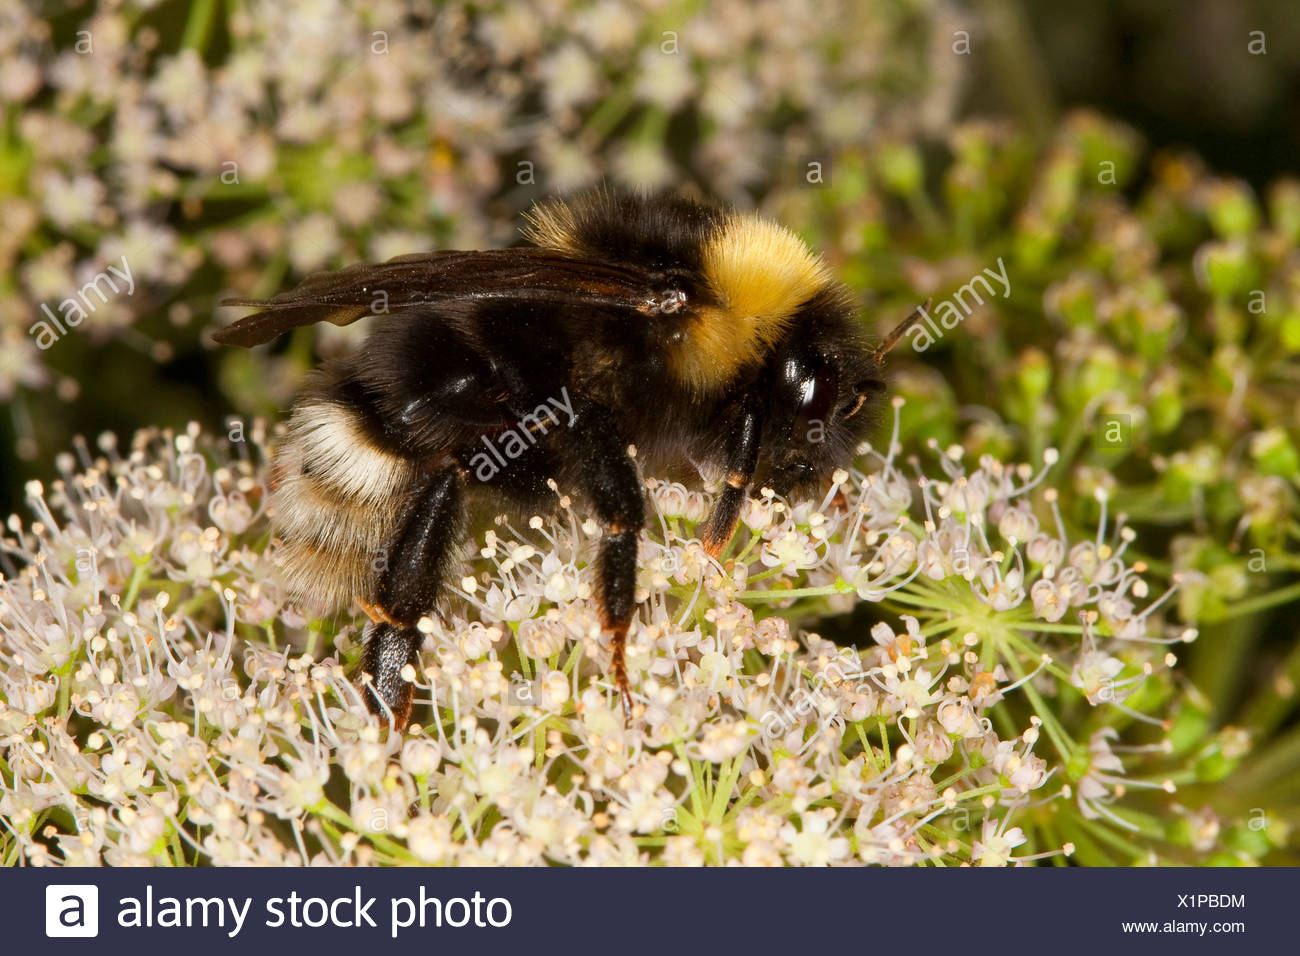 Cuckoo bumblebee  (Psithyrus sylvestris, Fernaldaepsithyrus sylvestris, Bombus sylvestris), brood parasite of early bumble bee, searching for nectar at an umbellifer, Germany - Stock Image